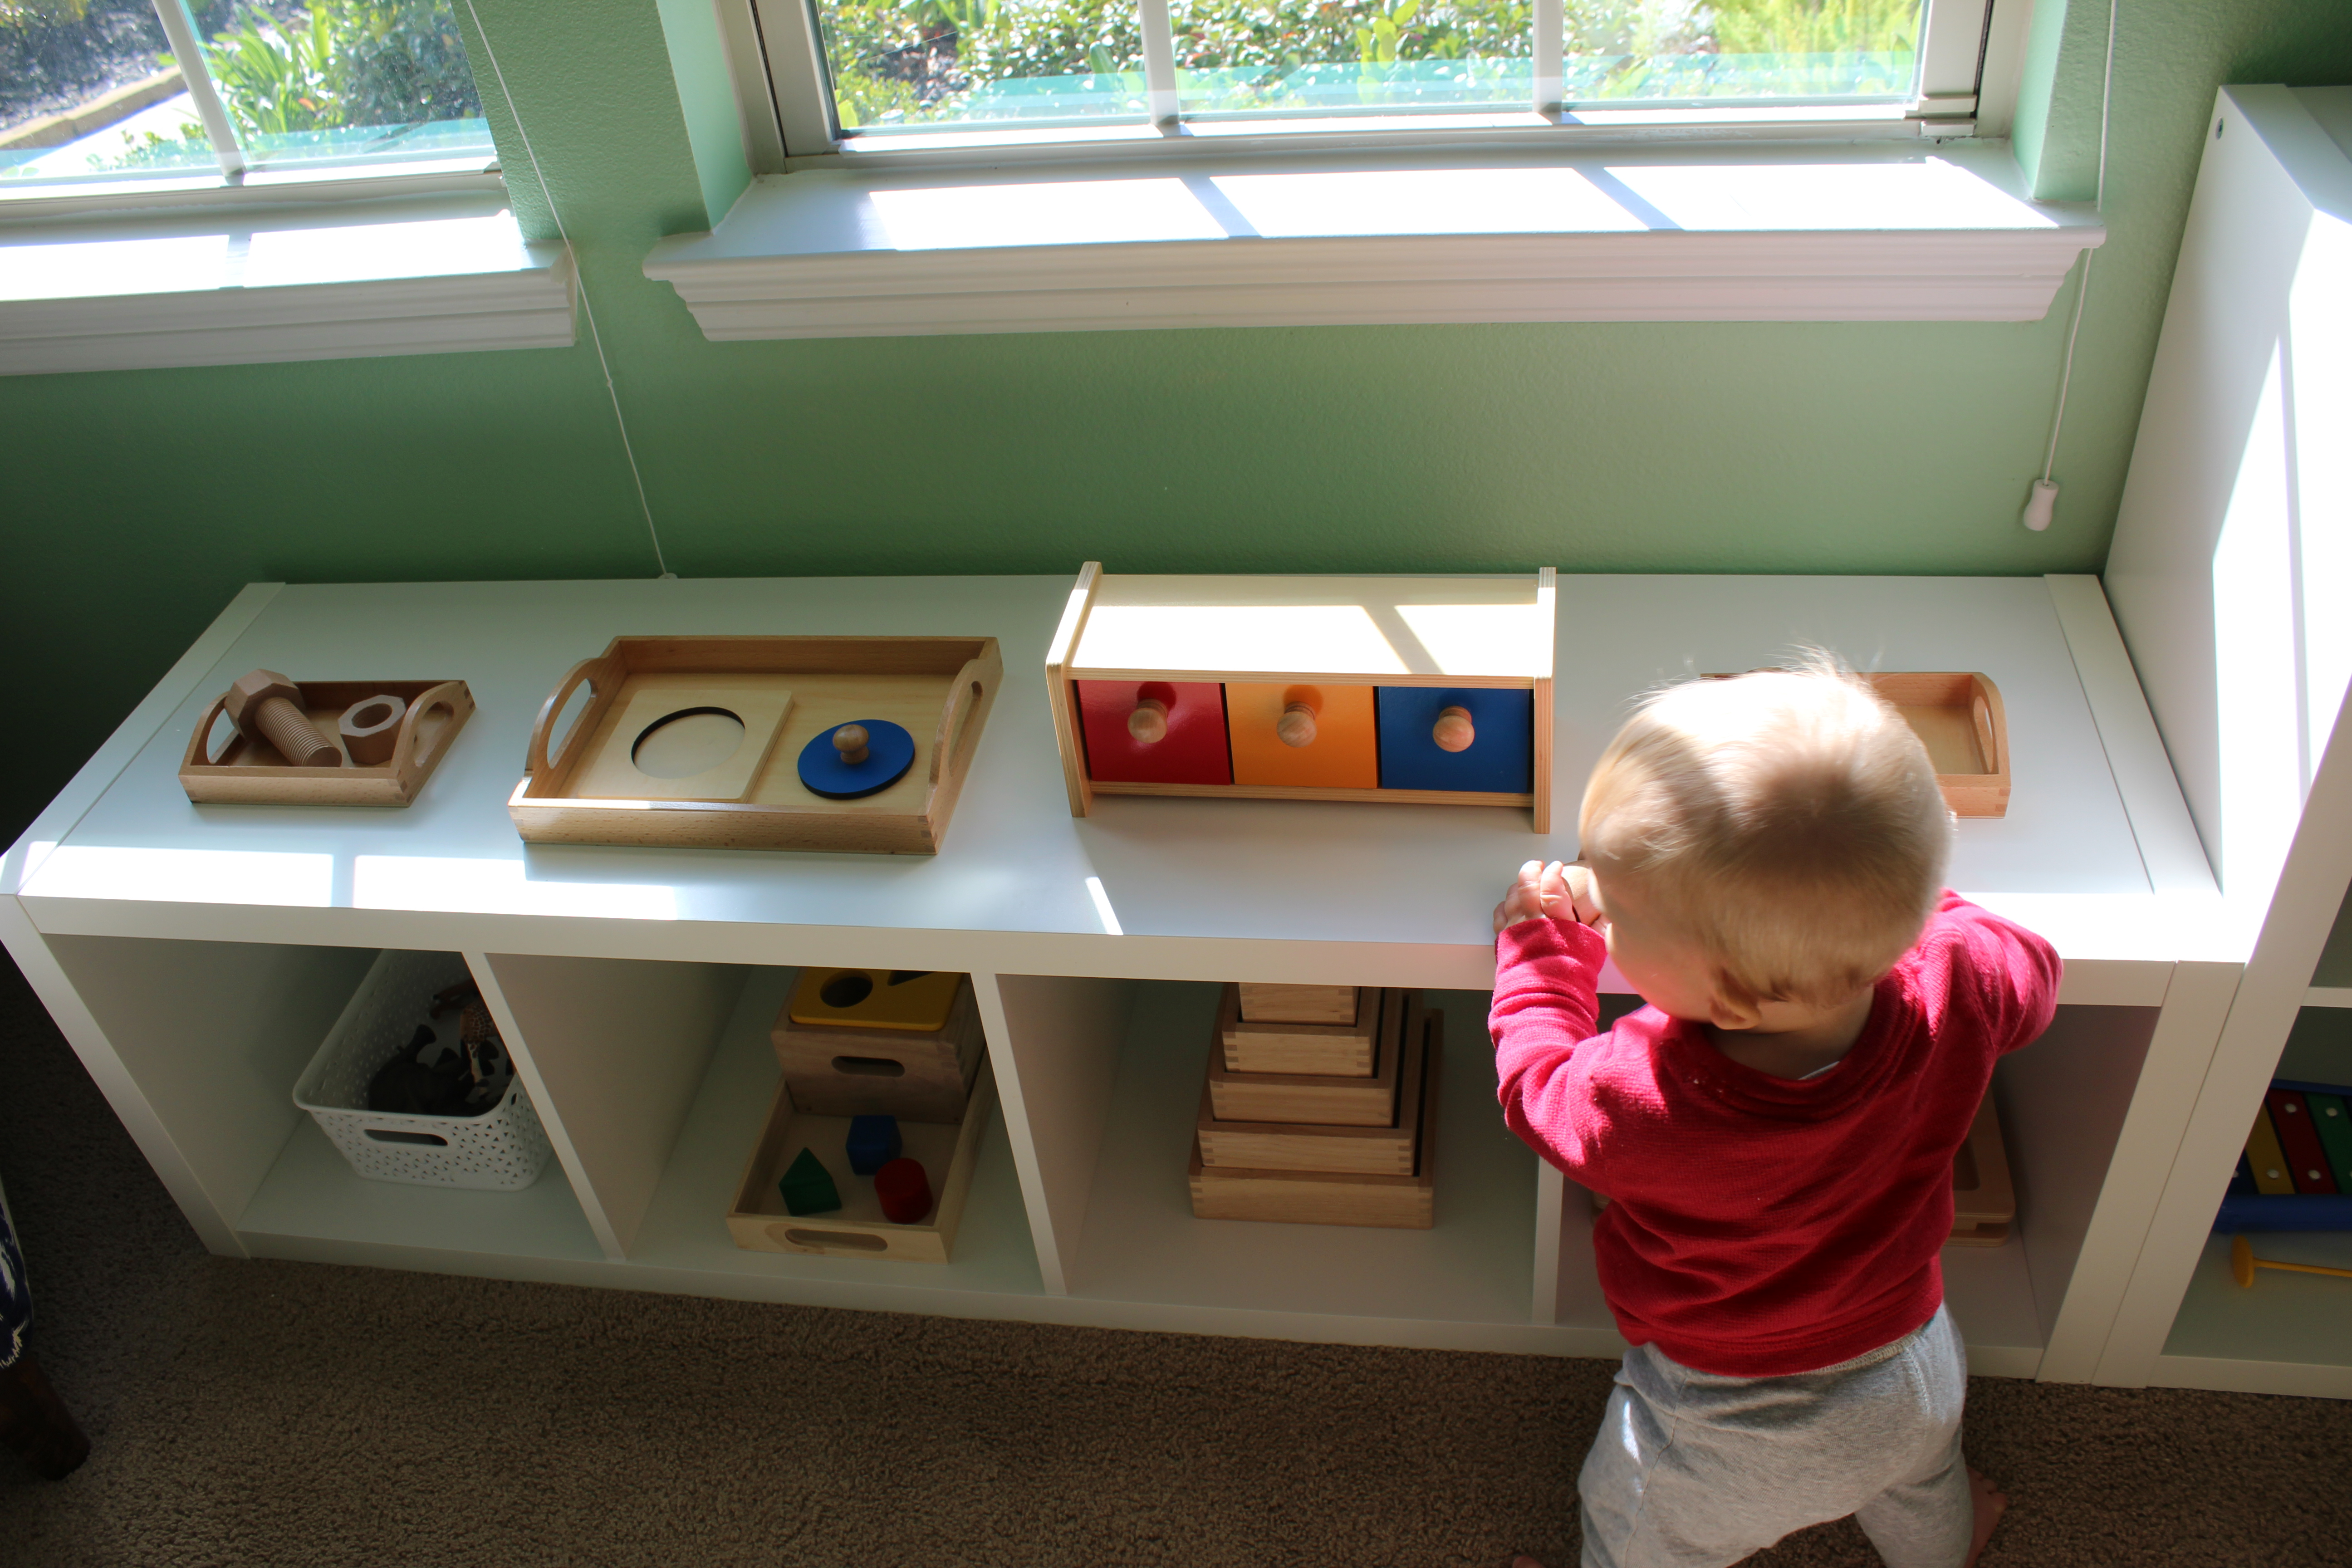 toddler colors parenting child page montessori this merry inspired joyful primary bookshelf discovery